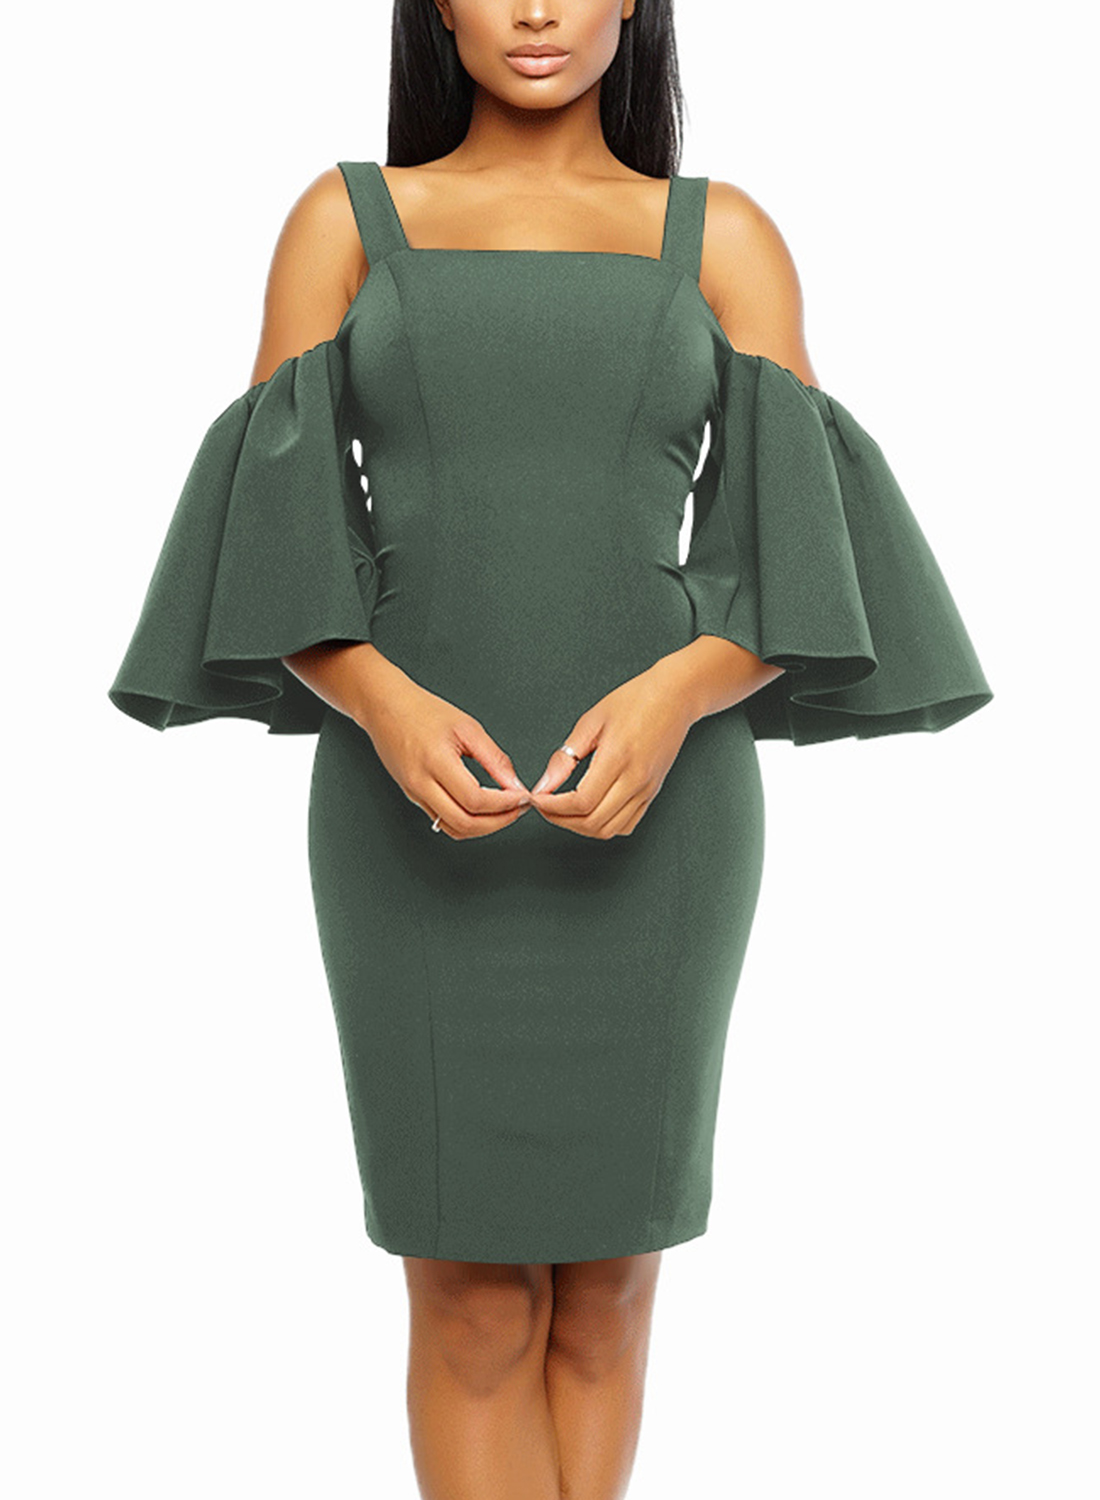 e3aa3775f352 ... Off Shoulder Flounce Sleeve Bodycon Dress With Zip STYLESIMO.com. Loading  zoom